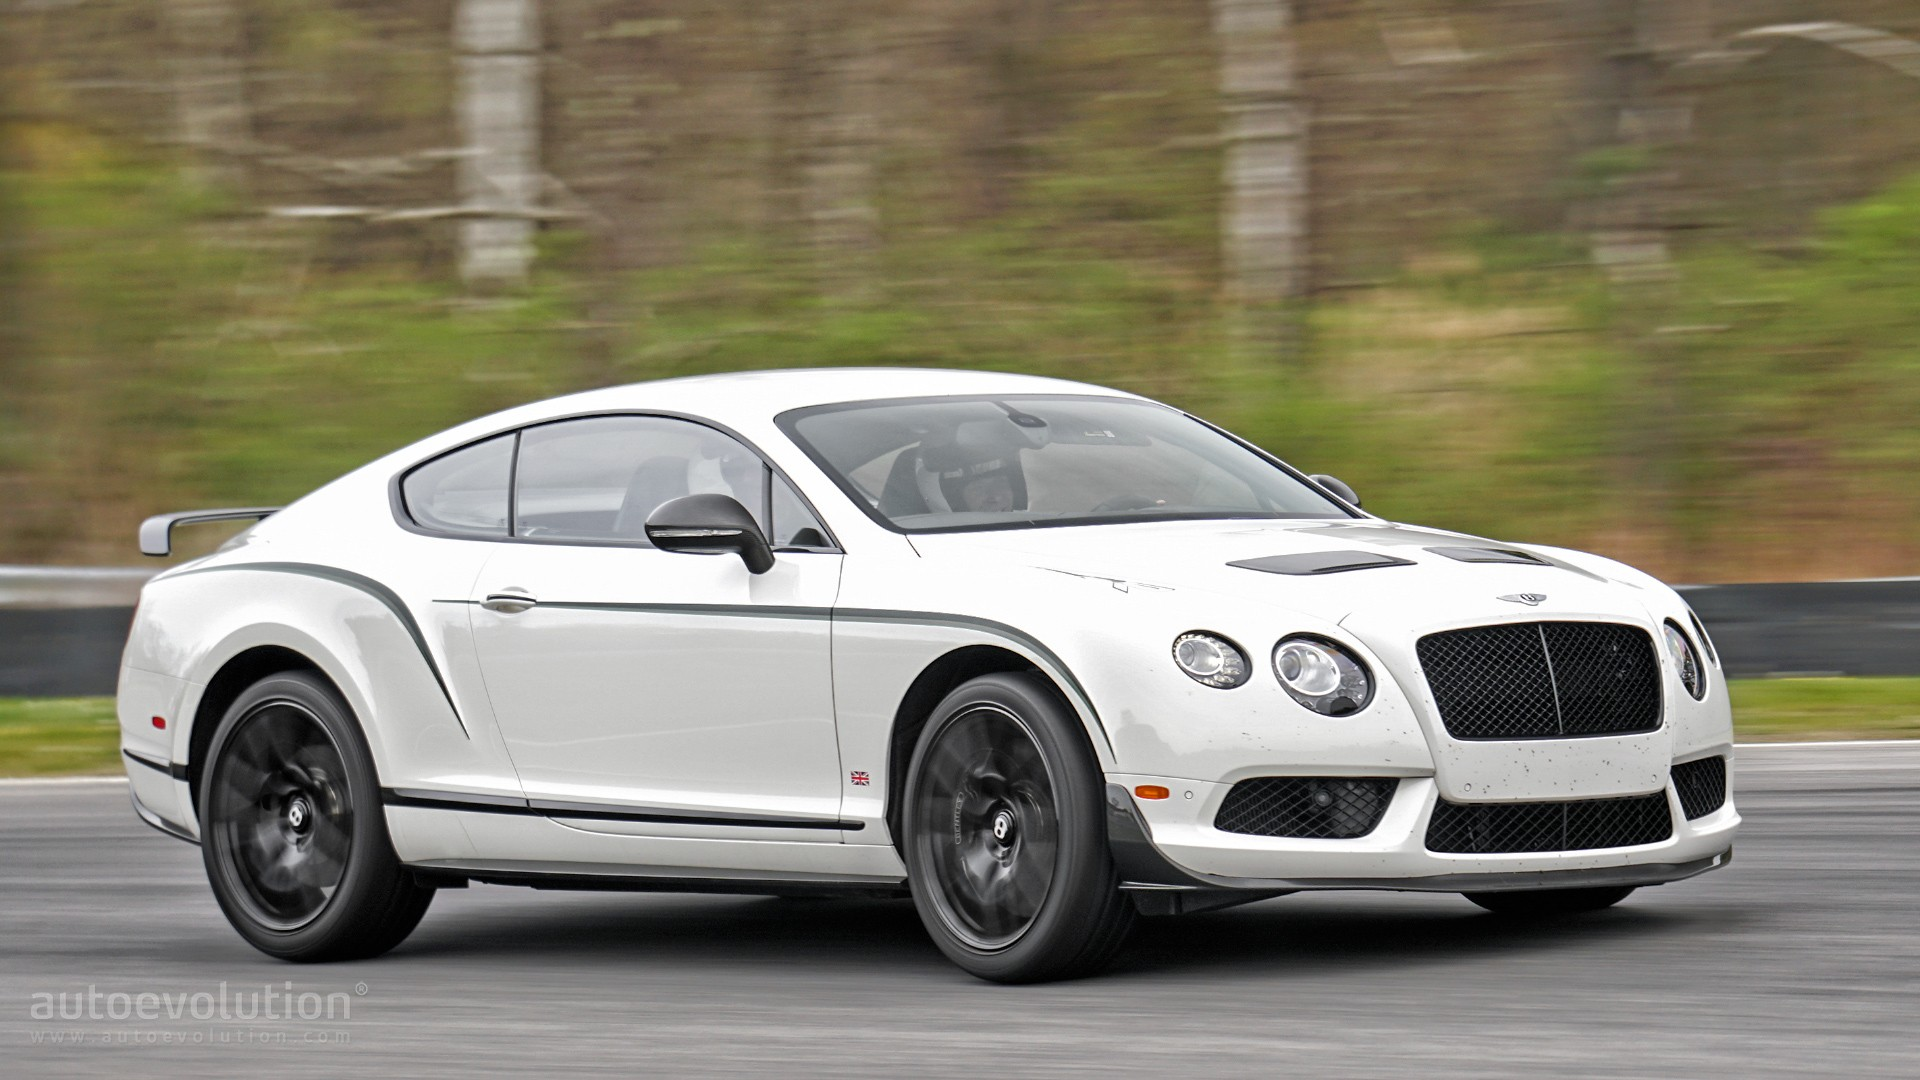 Bentley continental gt w12 review autoevolution - Photo Gallery 40